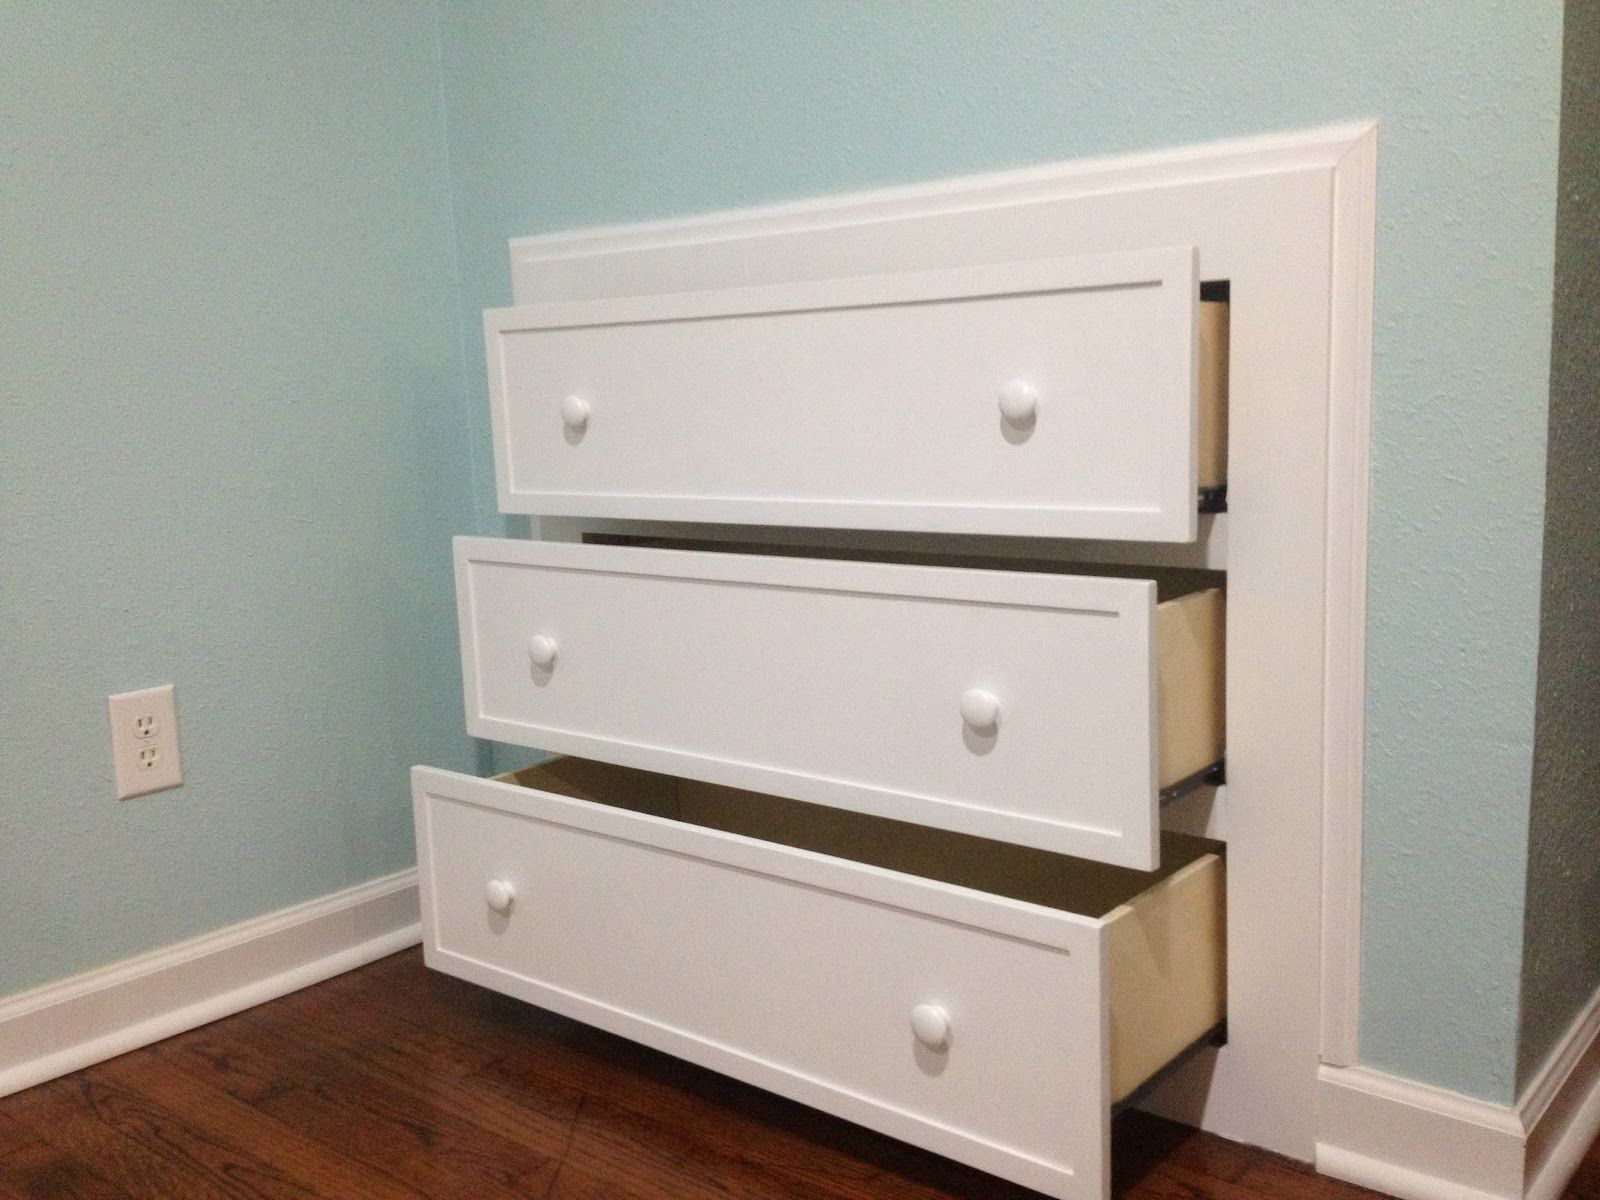 How To Build A Dresser Into A Wall